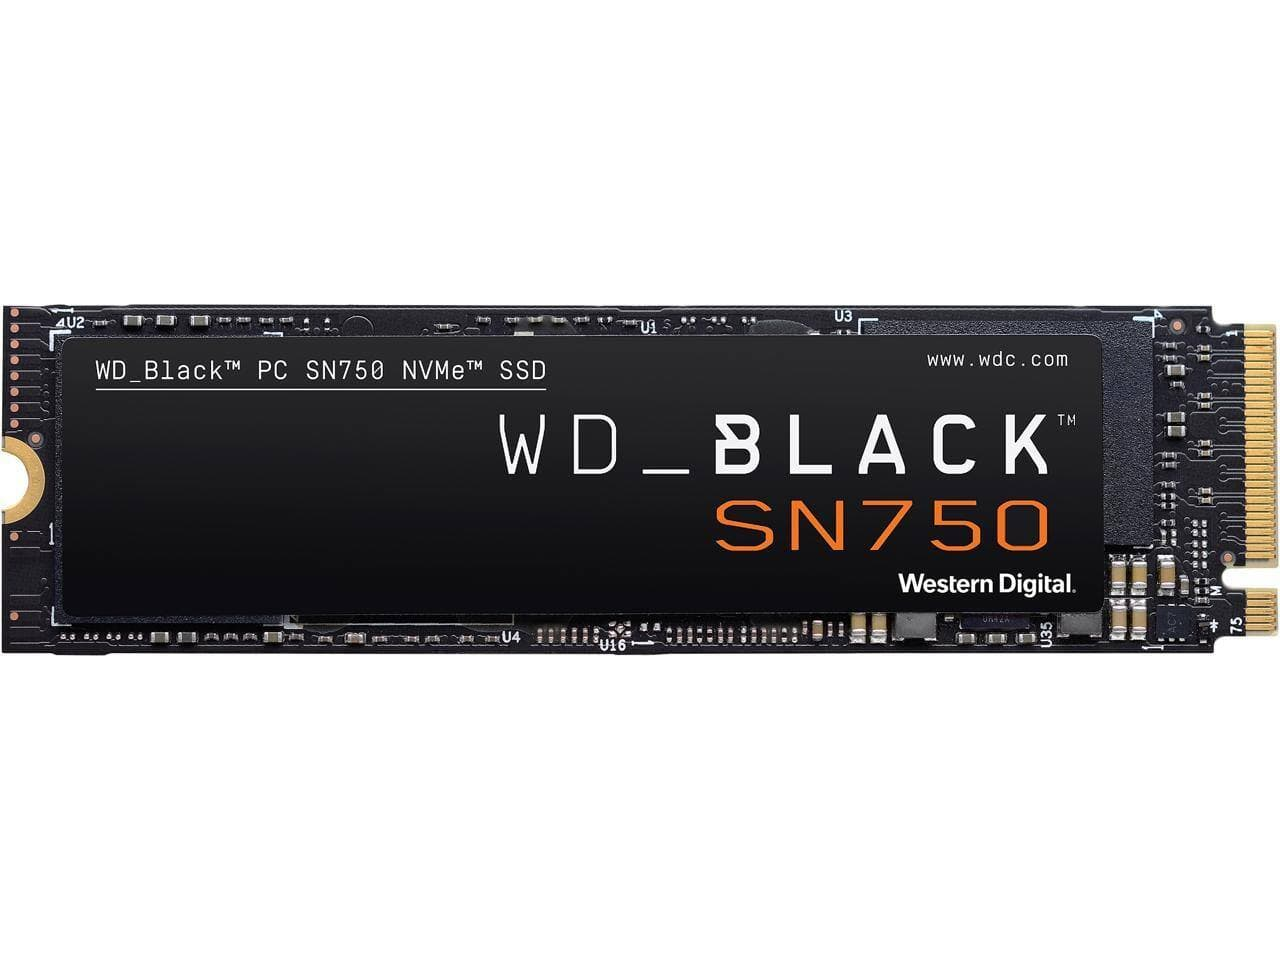 WD Black SN750 NVMe M.2 1TB SSD for $134.99, WD BLUE 500GB SATA SSD $50 and more after 10% off + Free Shipping